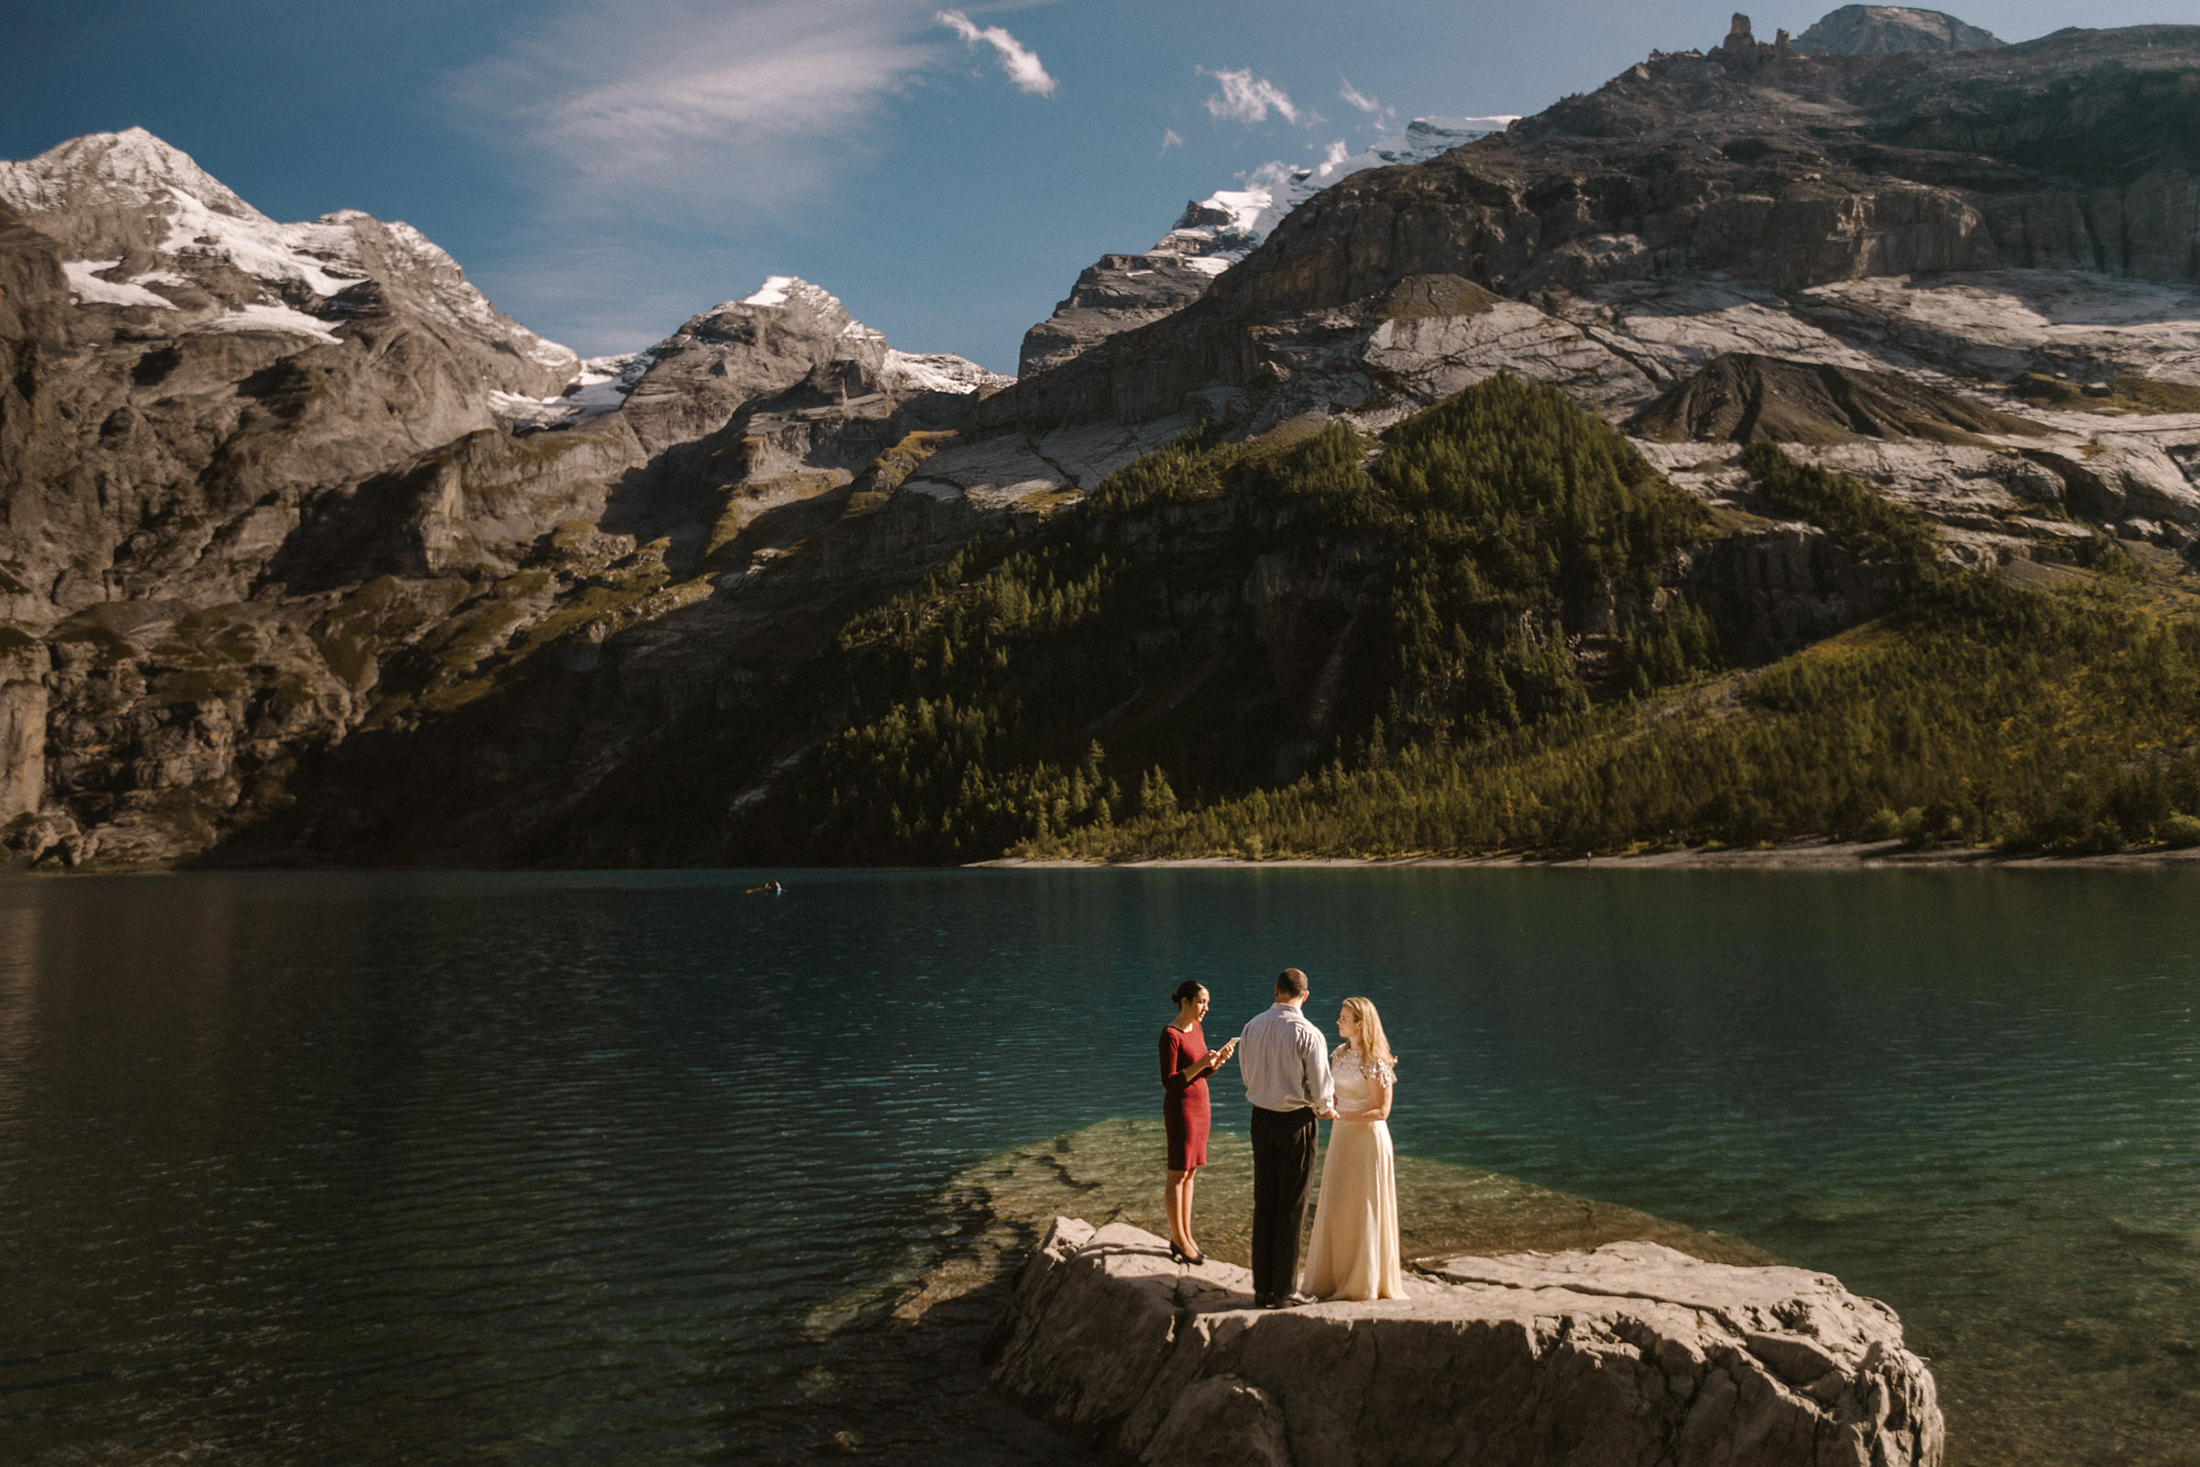 elopement-oeshinensee-switzerland_bendik-photography_featured